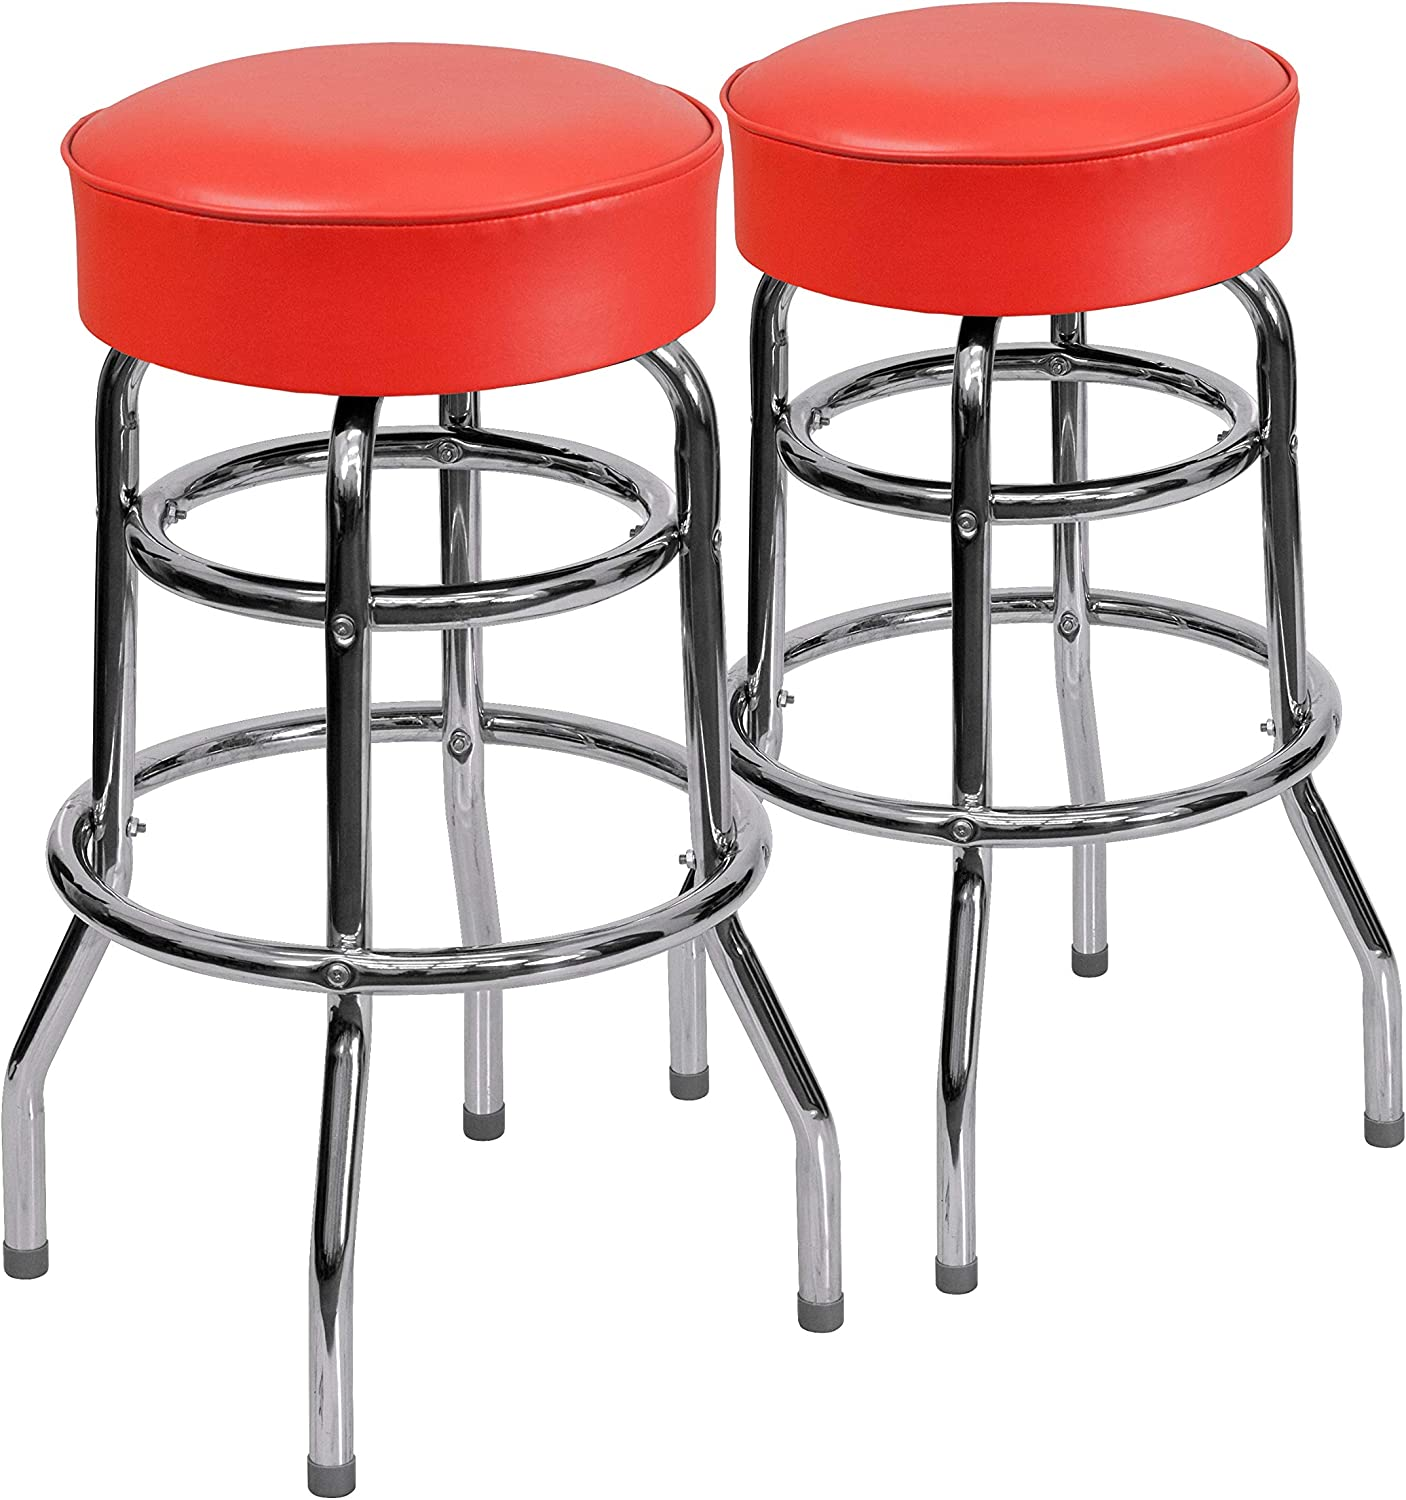 Flash Furniture 2 Pack Double Ring Chrome Barstool with Red Seat